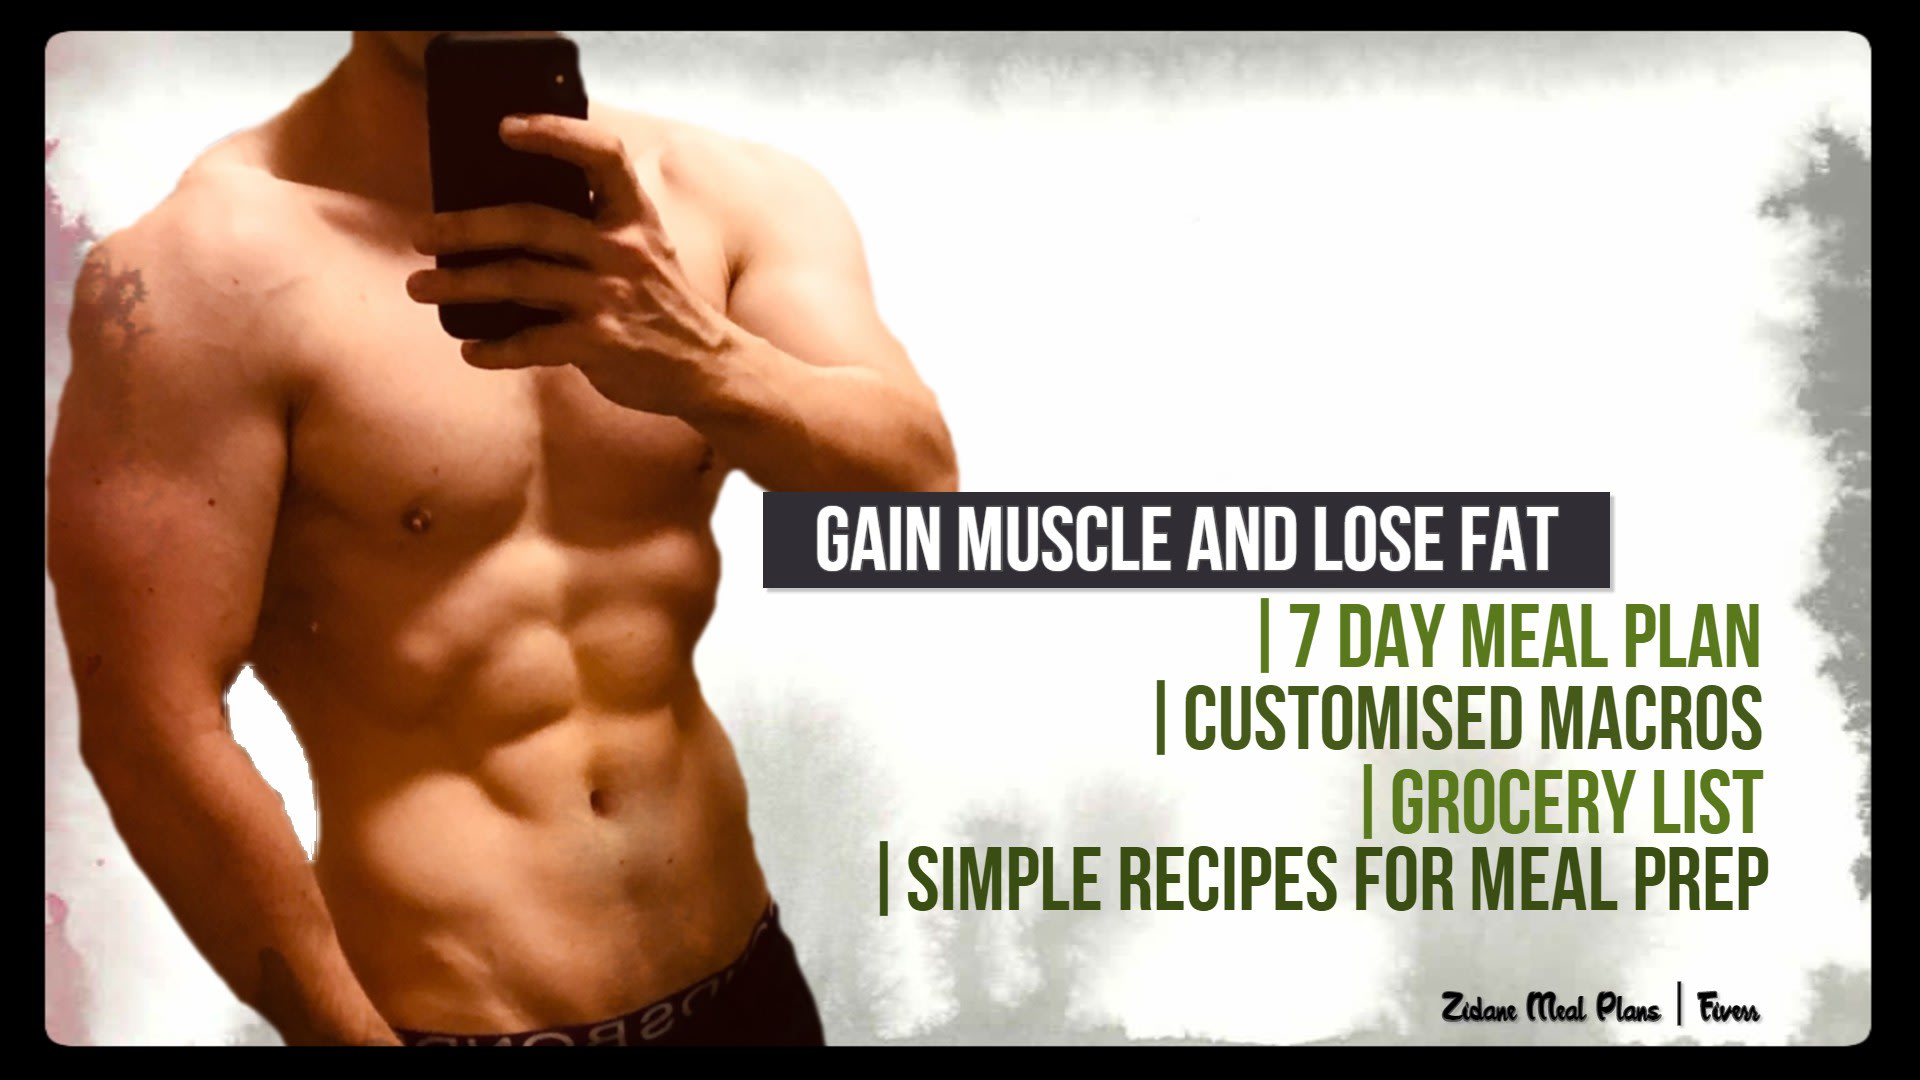 Create A Customised Meal Plan To Lose Fat And Gain Muscle By Zidane1